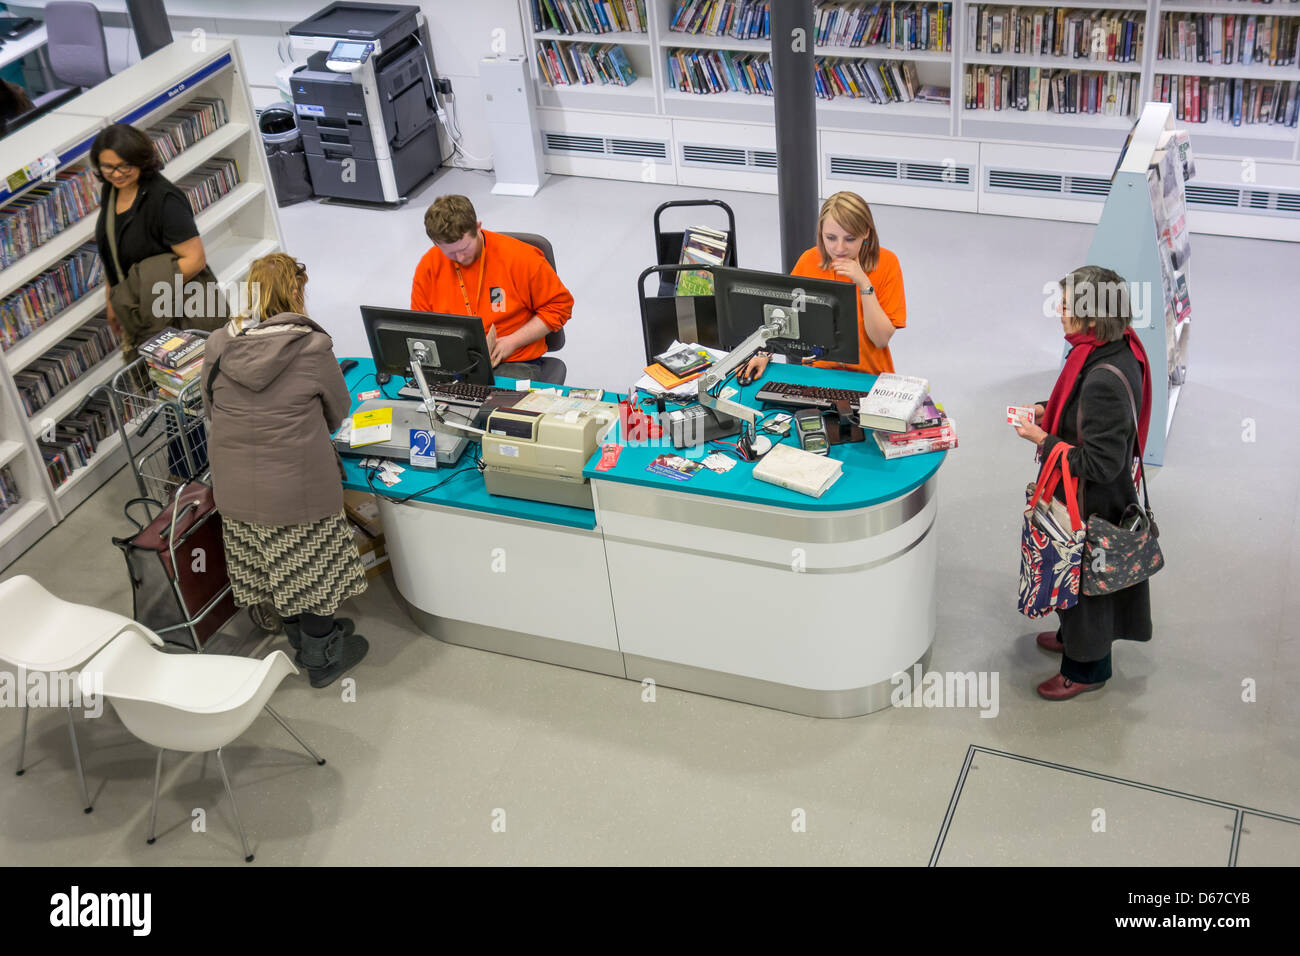 Library Book Checkout Check out Enquiry Desk - Stock Image